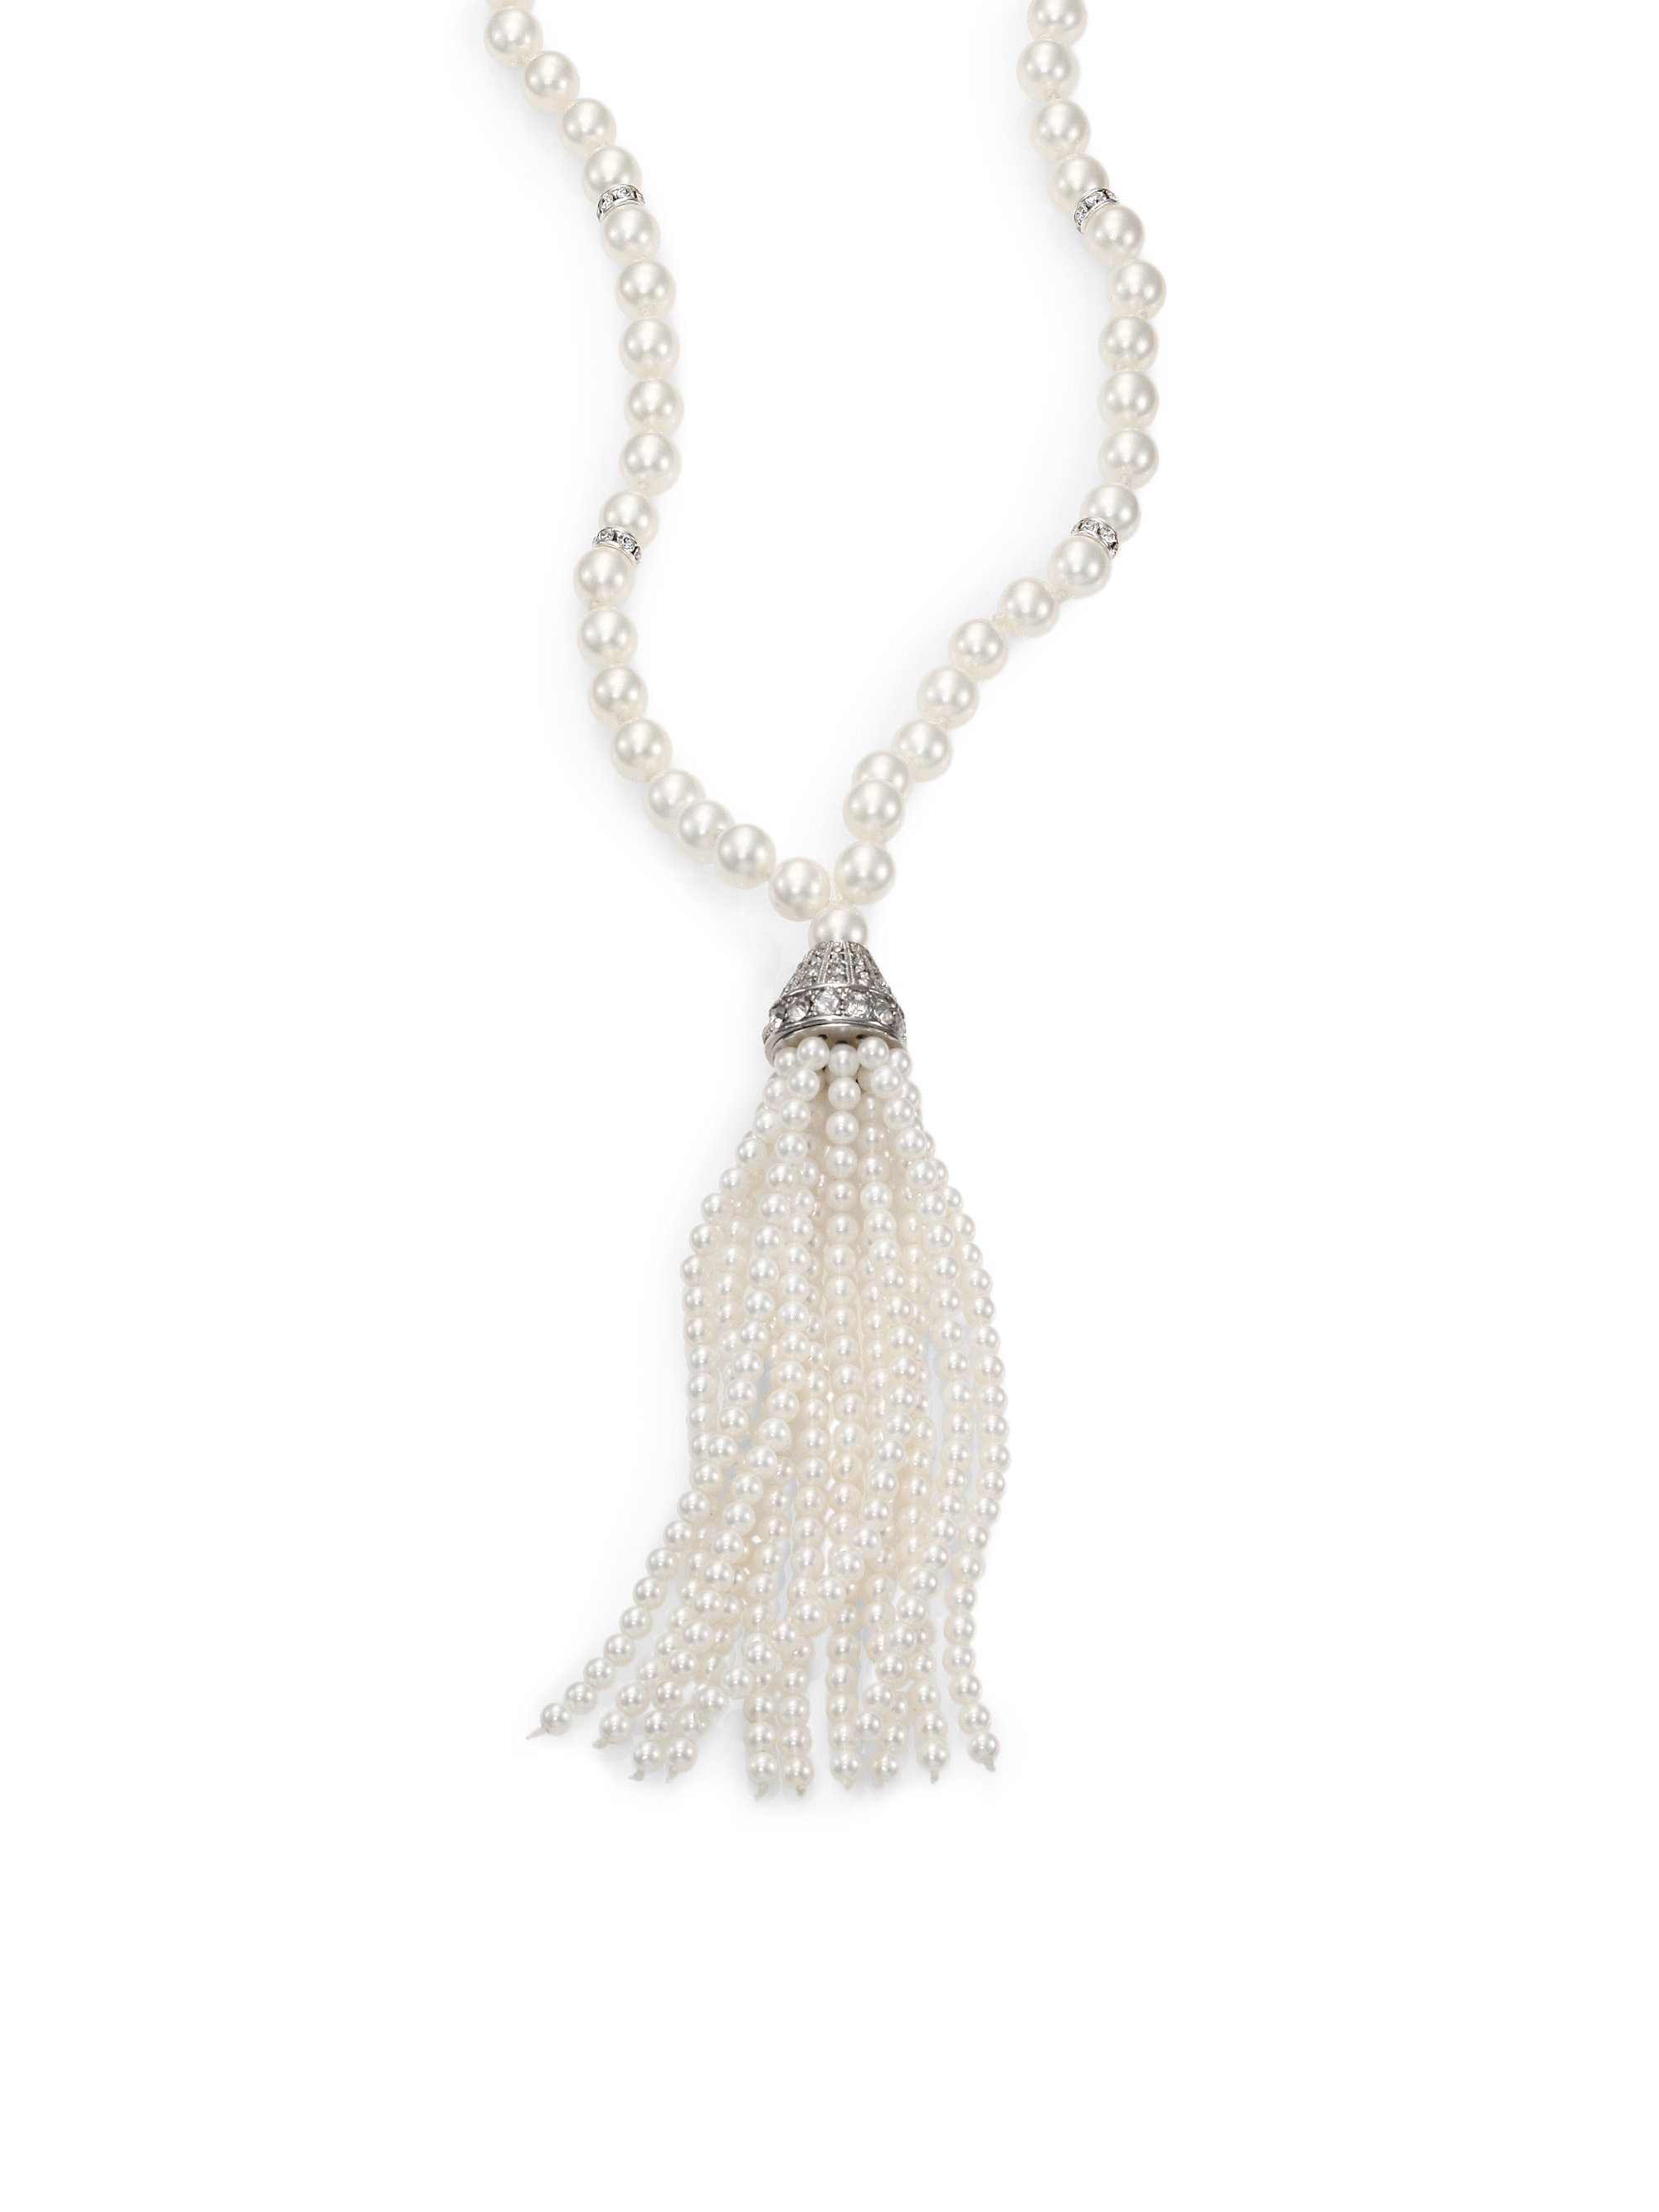 Lyst - Kenneth Jay Lane 5Mm-8Mm White Shell Pearl Long Tassel ... e788e8bc8c36